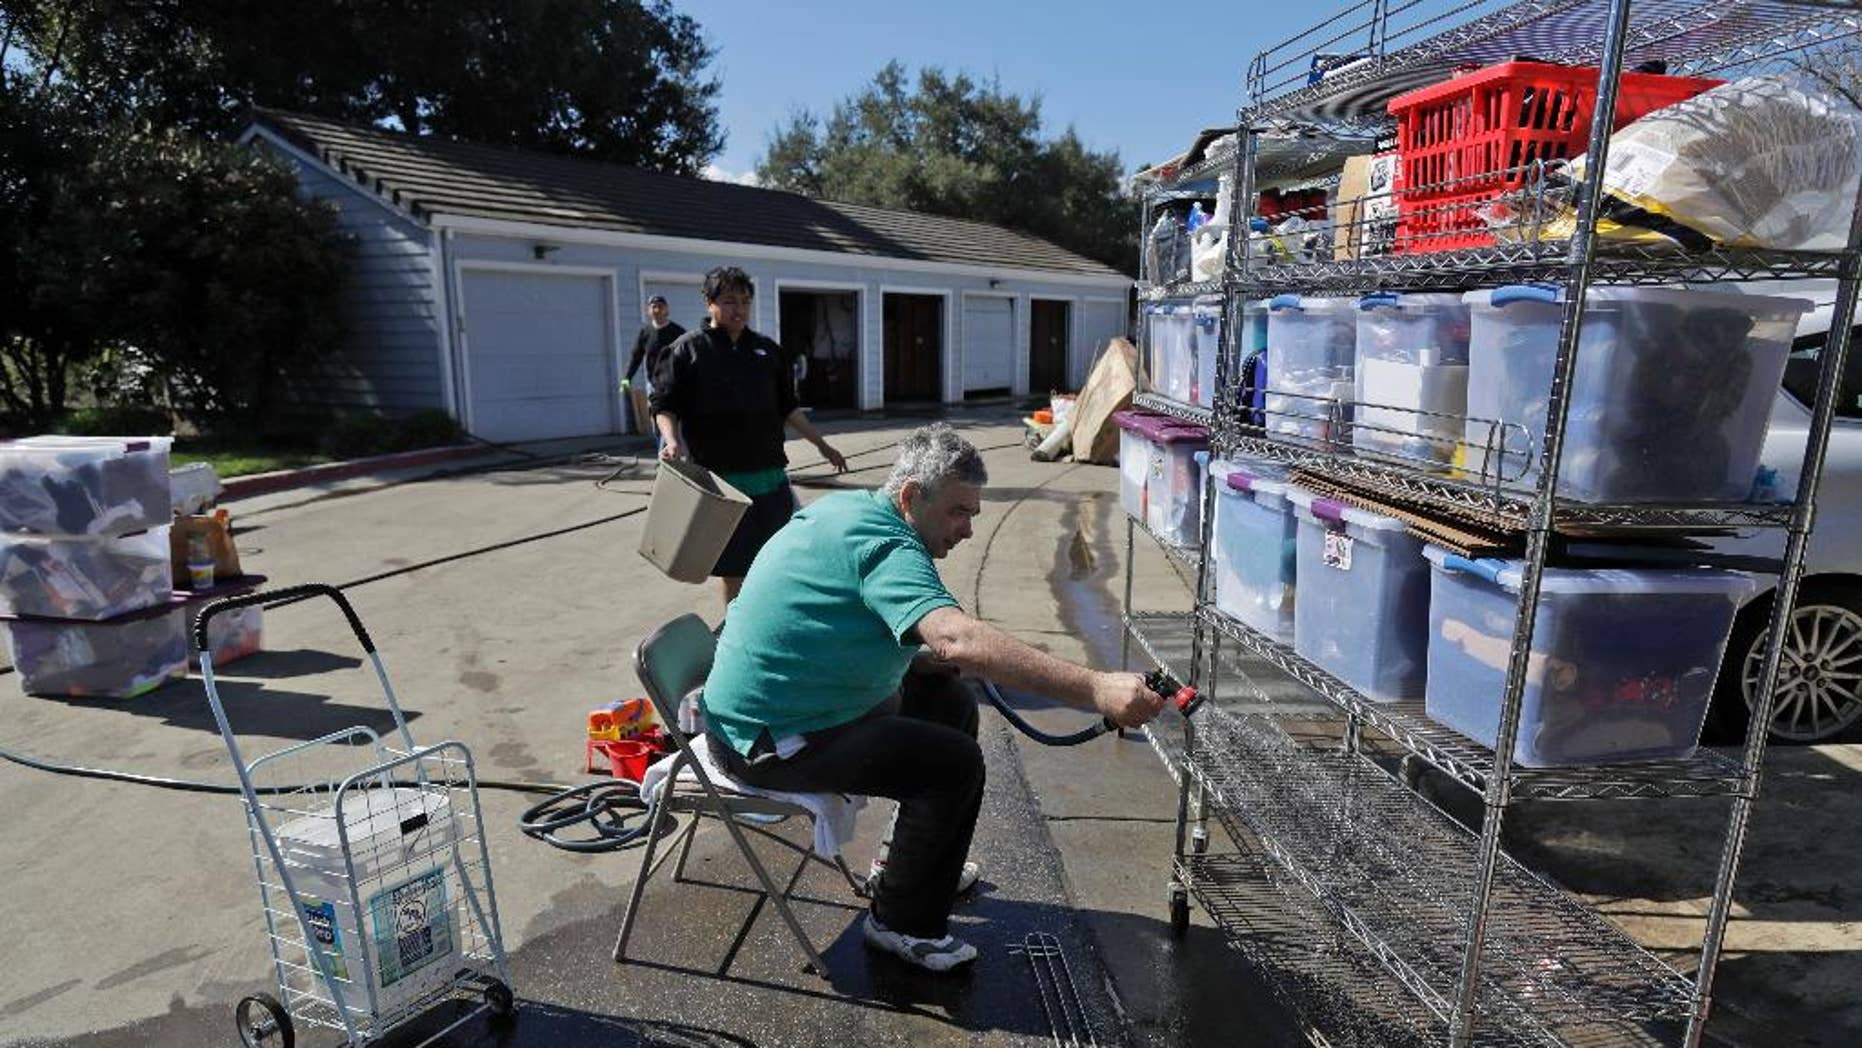 Residents wash their belongings as floodwaters recede along Coyote Creek Thursday, Feb. 23, 2017, in San Jose, Calif. Thousands of people evacuated from a flood in San Jose, California, returned home Thursday amid warnings to be careful about hygiene and handling food that may have come into contact with flood water. (AP Photo/Marcio Jose Sanchez)